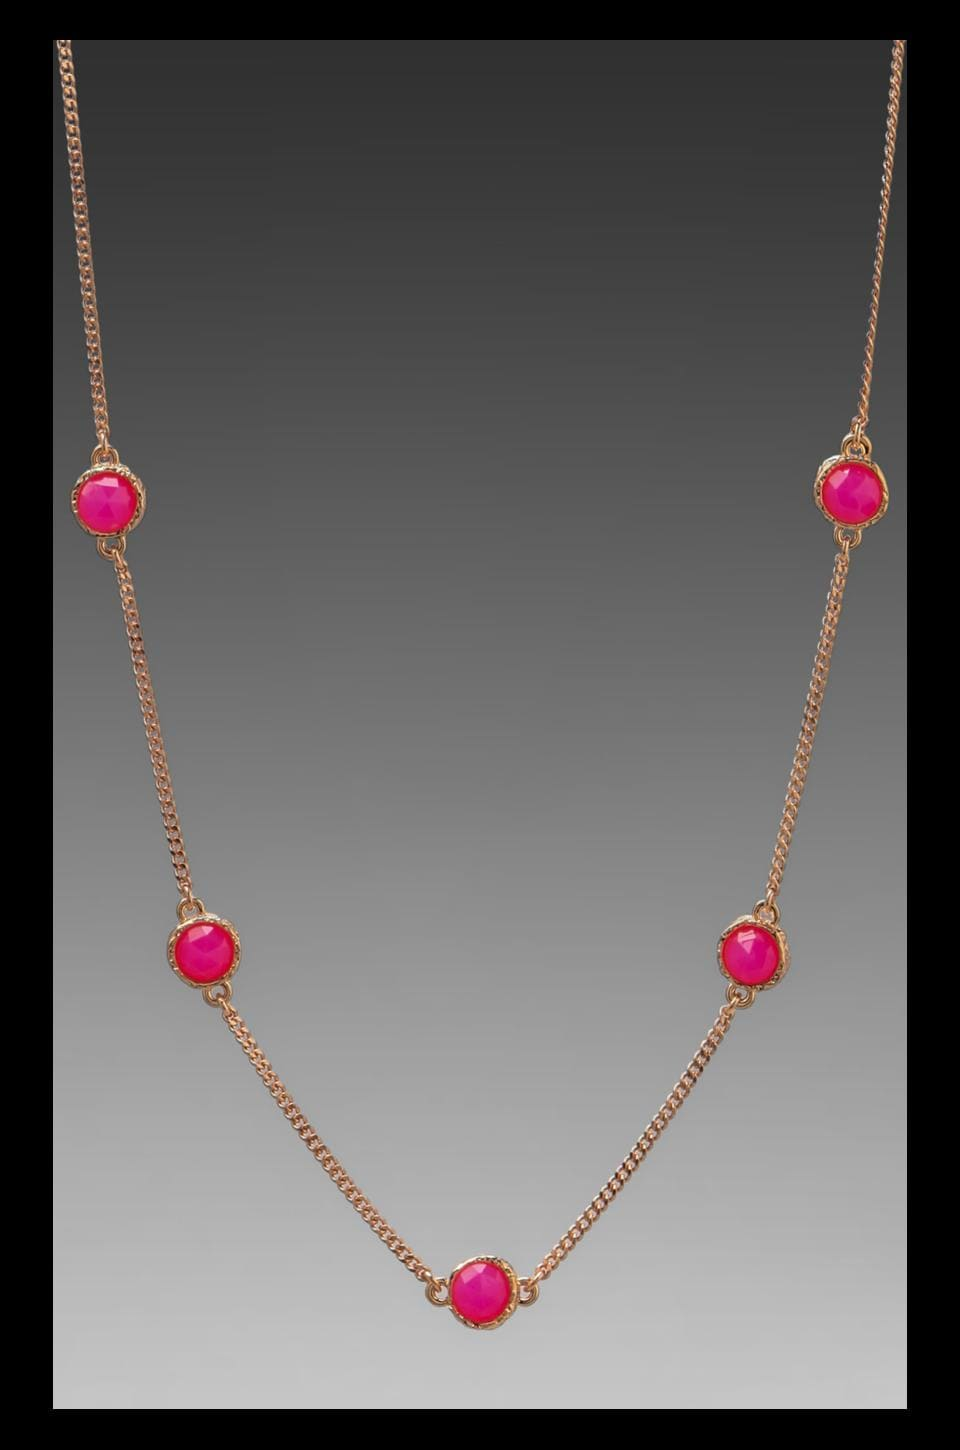 Marc by Marc Jacobs Bow Short Necklace in Knockout Pink